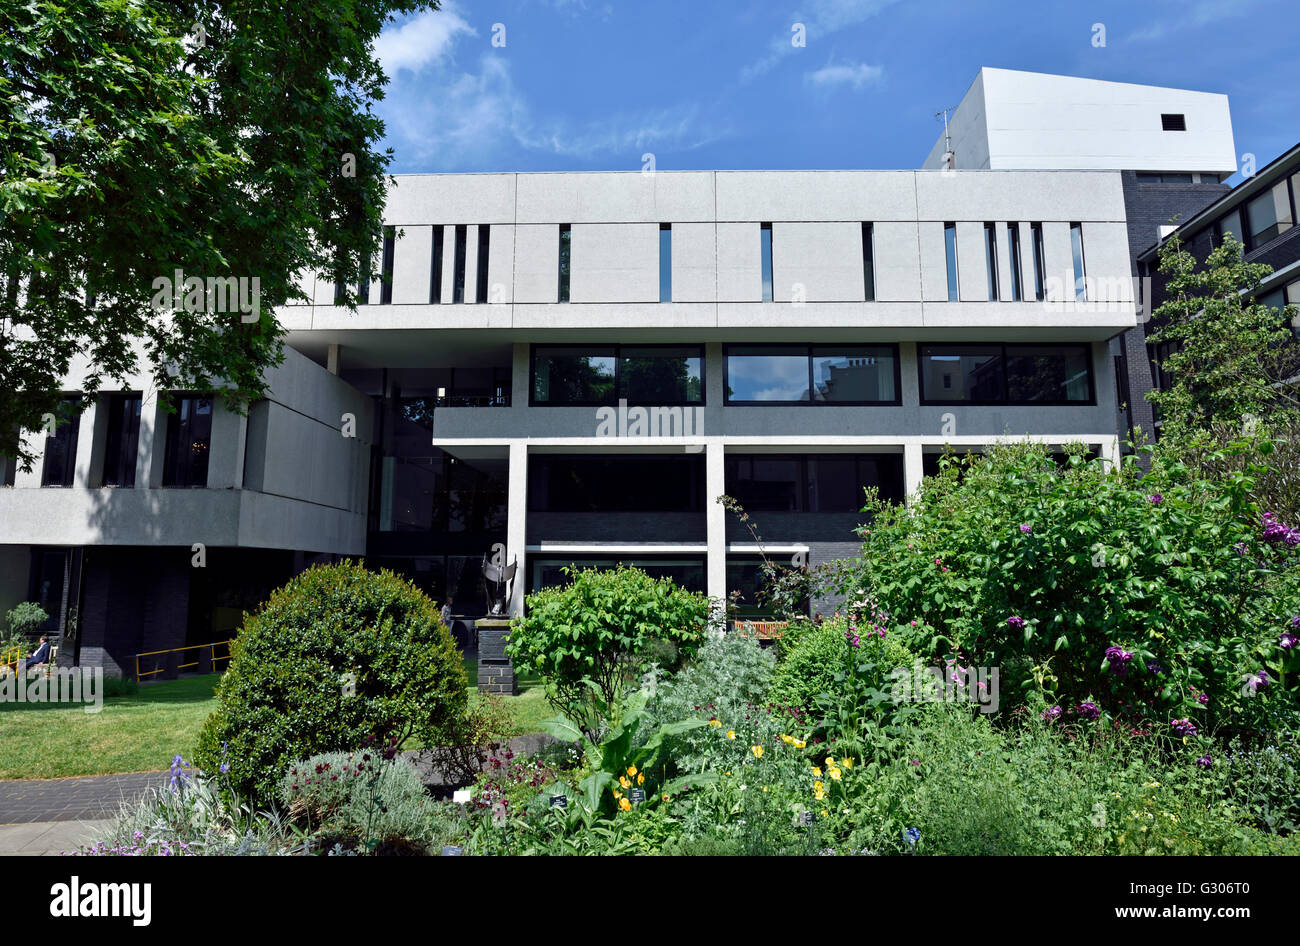 The Royal College of Physicians, new building, City of Westminster London England Britain UK - Stock Image